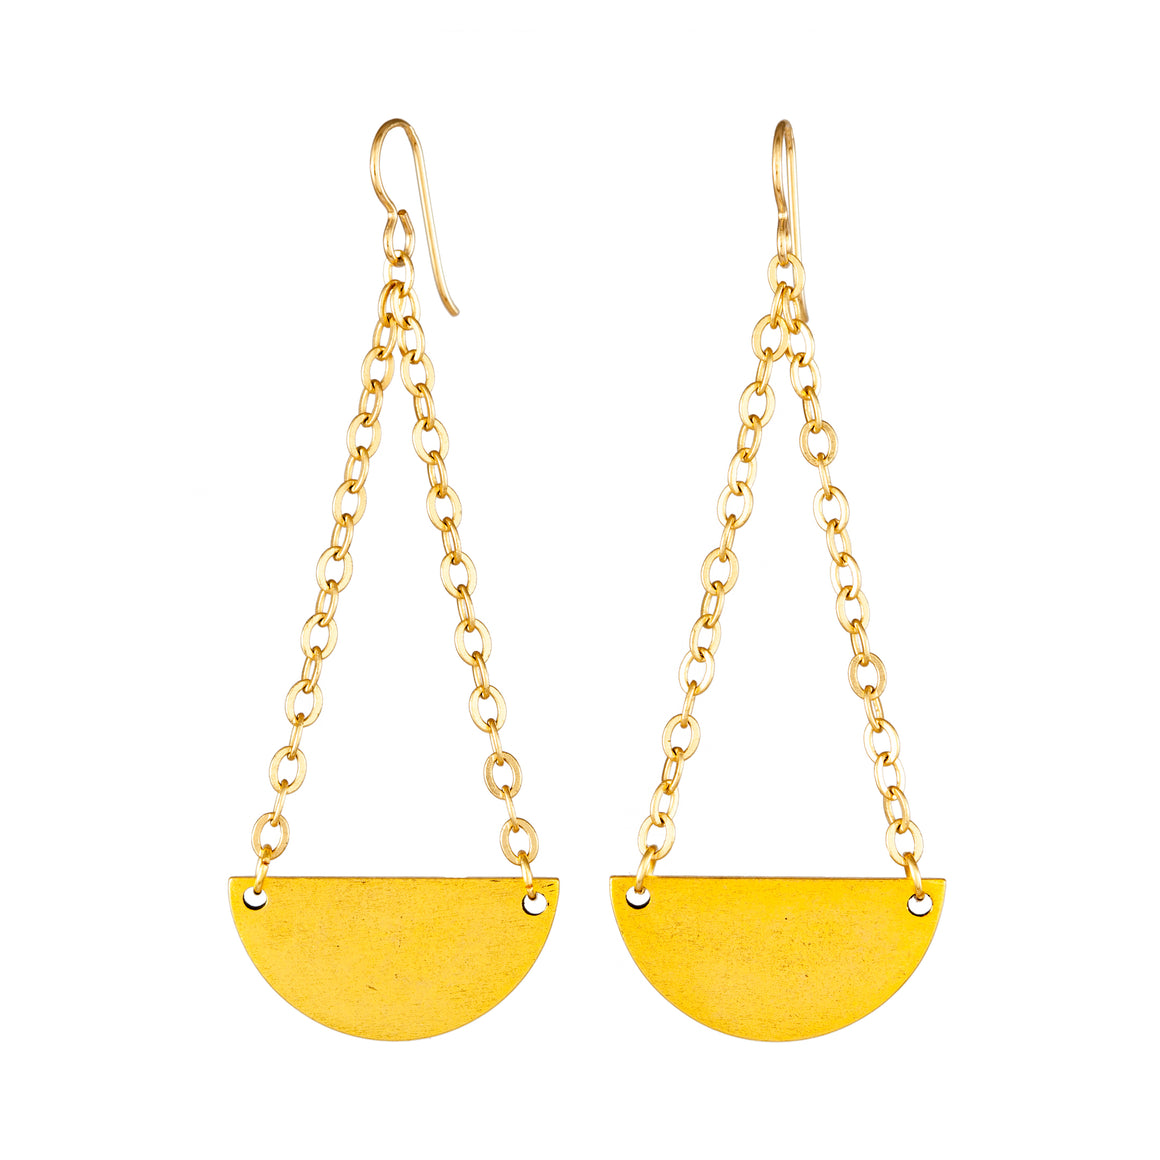 HALF MOON SWING | EARRINGS